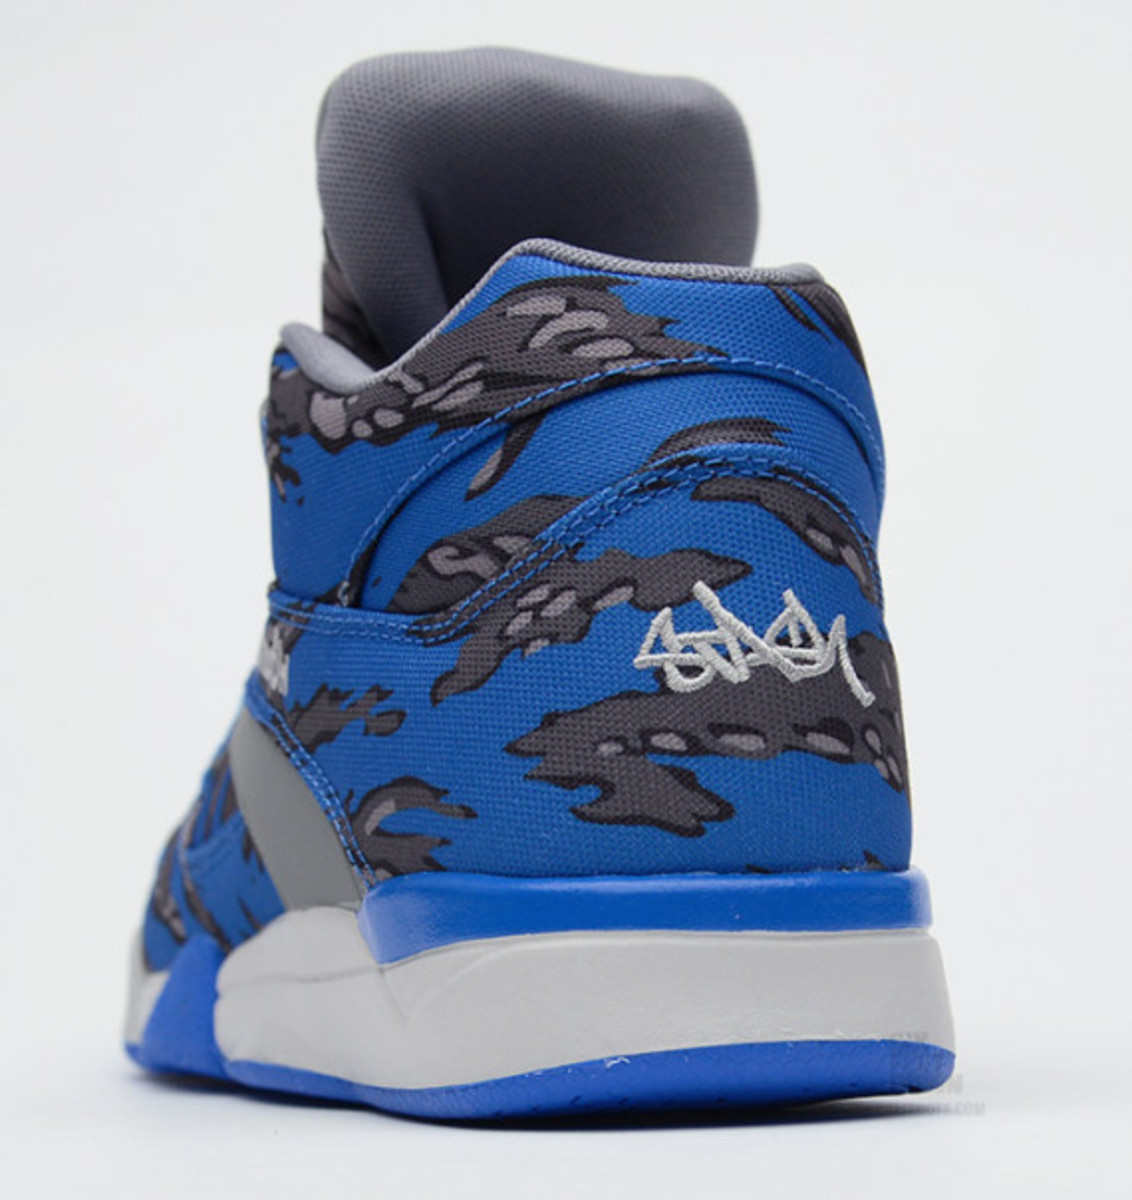 stash-reebok-court-victory-pump-camo-collection-07